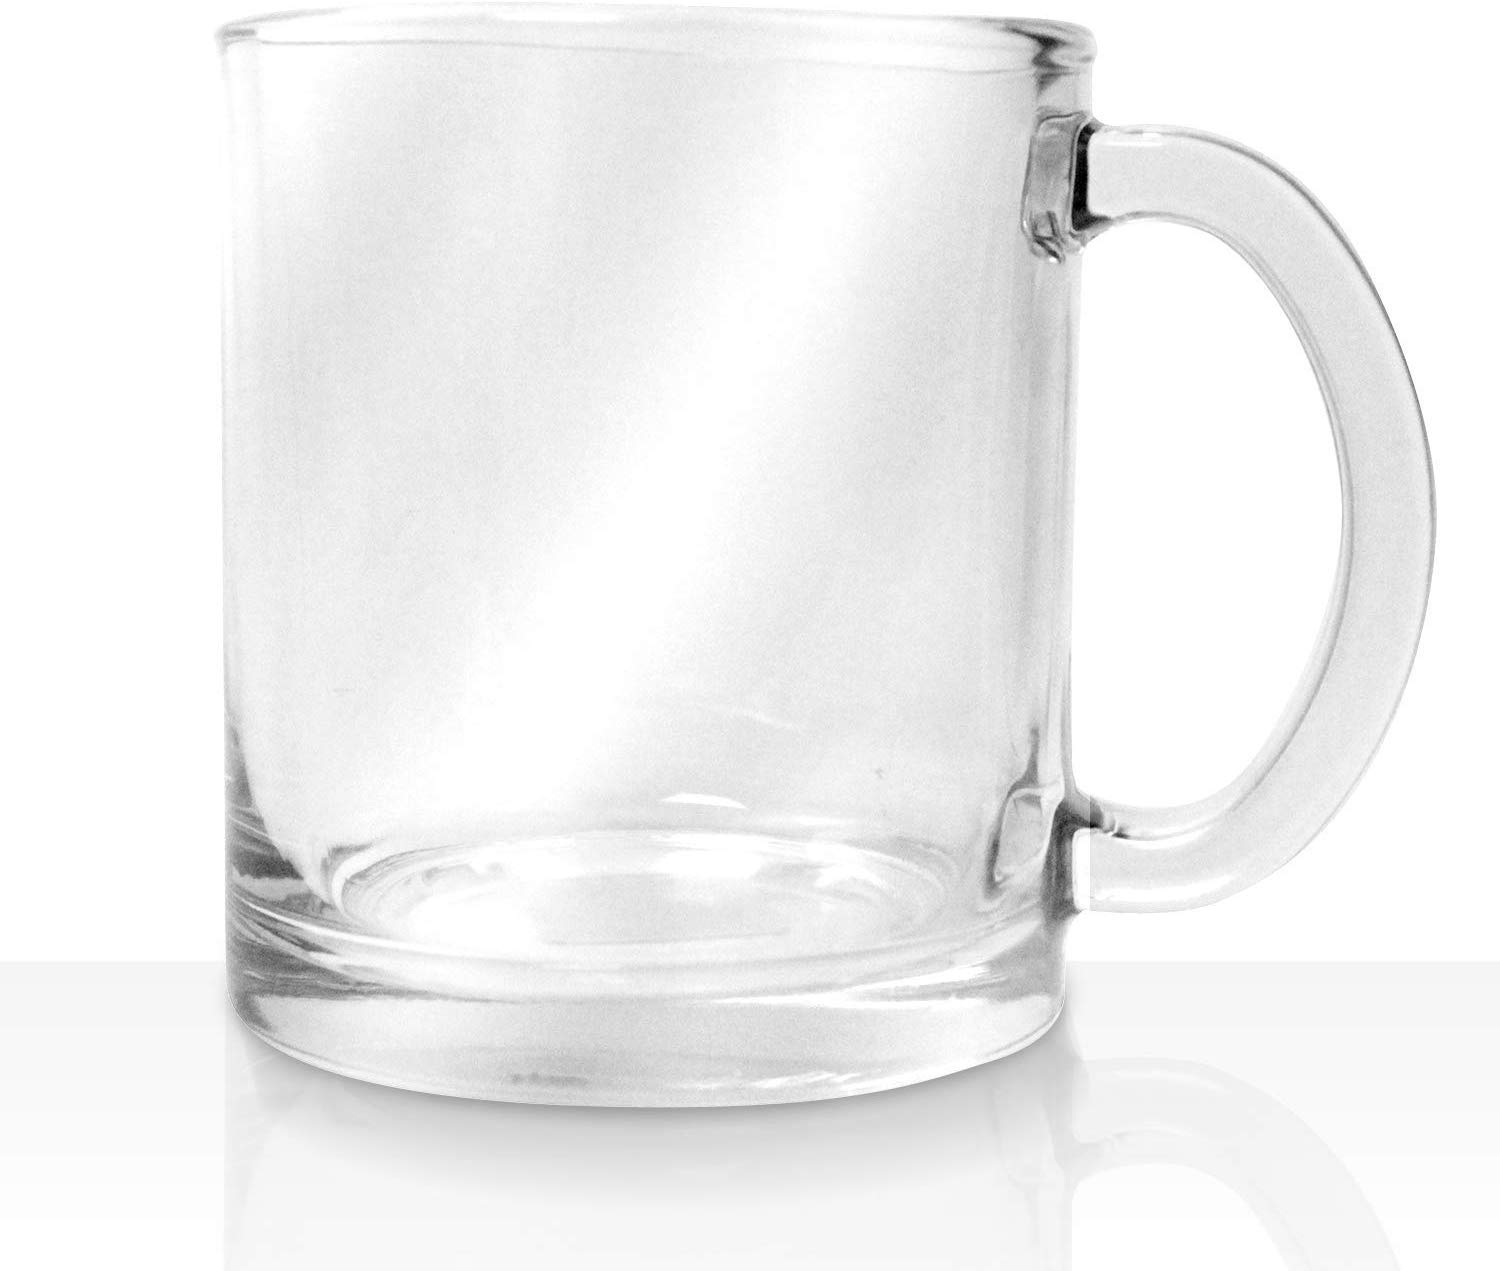 vikko 10 75 ounce glass coffee mugs thick and durable for coffee tea cider etc microwave and dishwasher safe set of 6 clear glass mugs